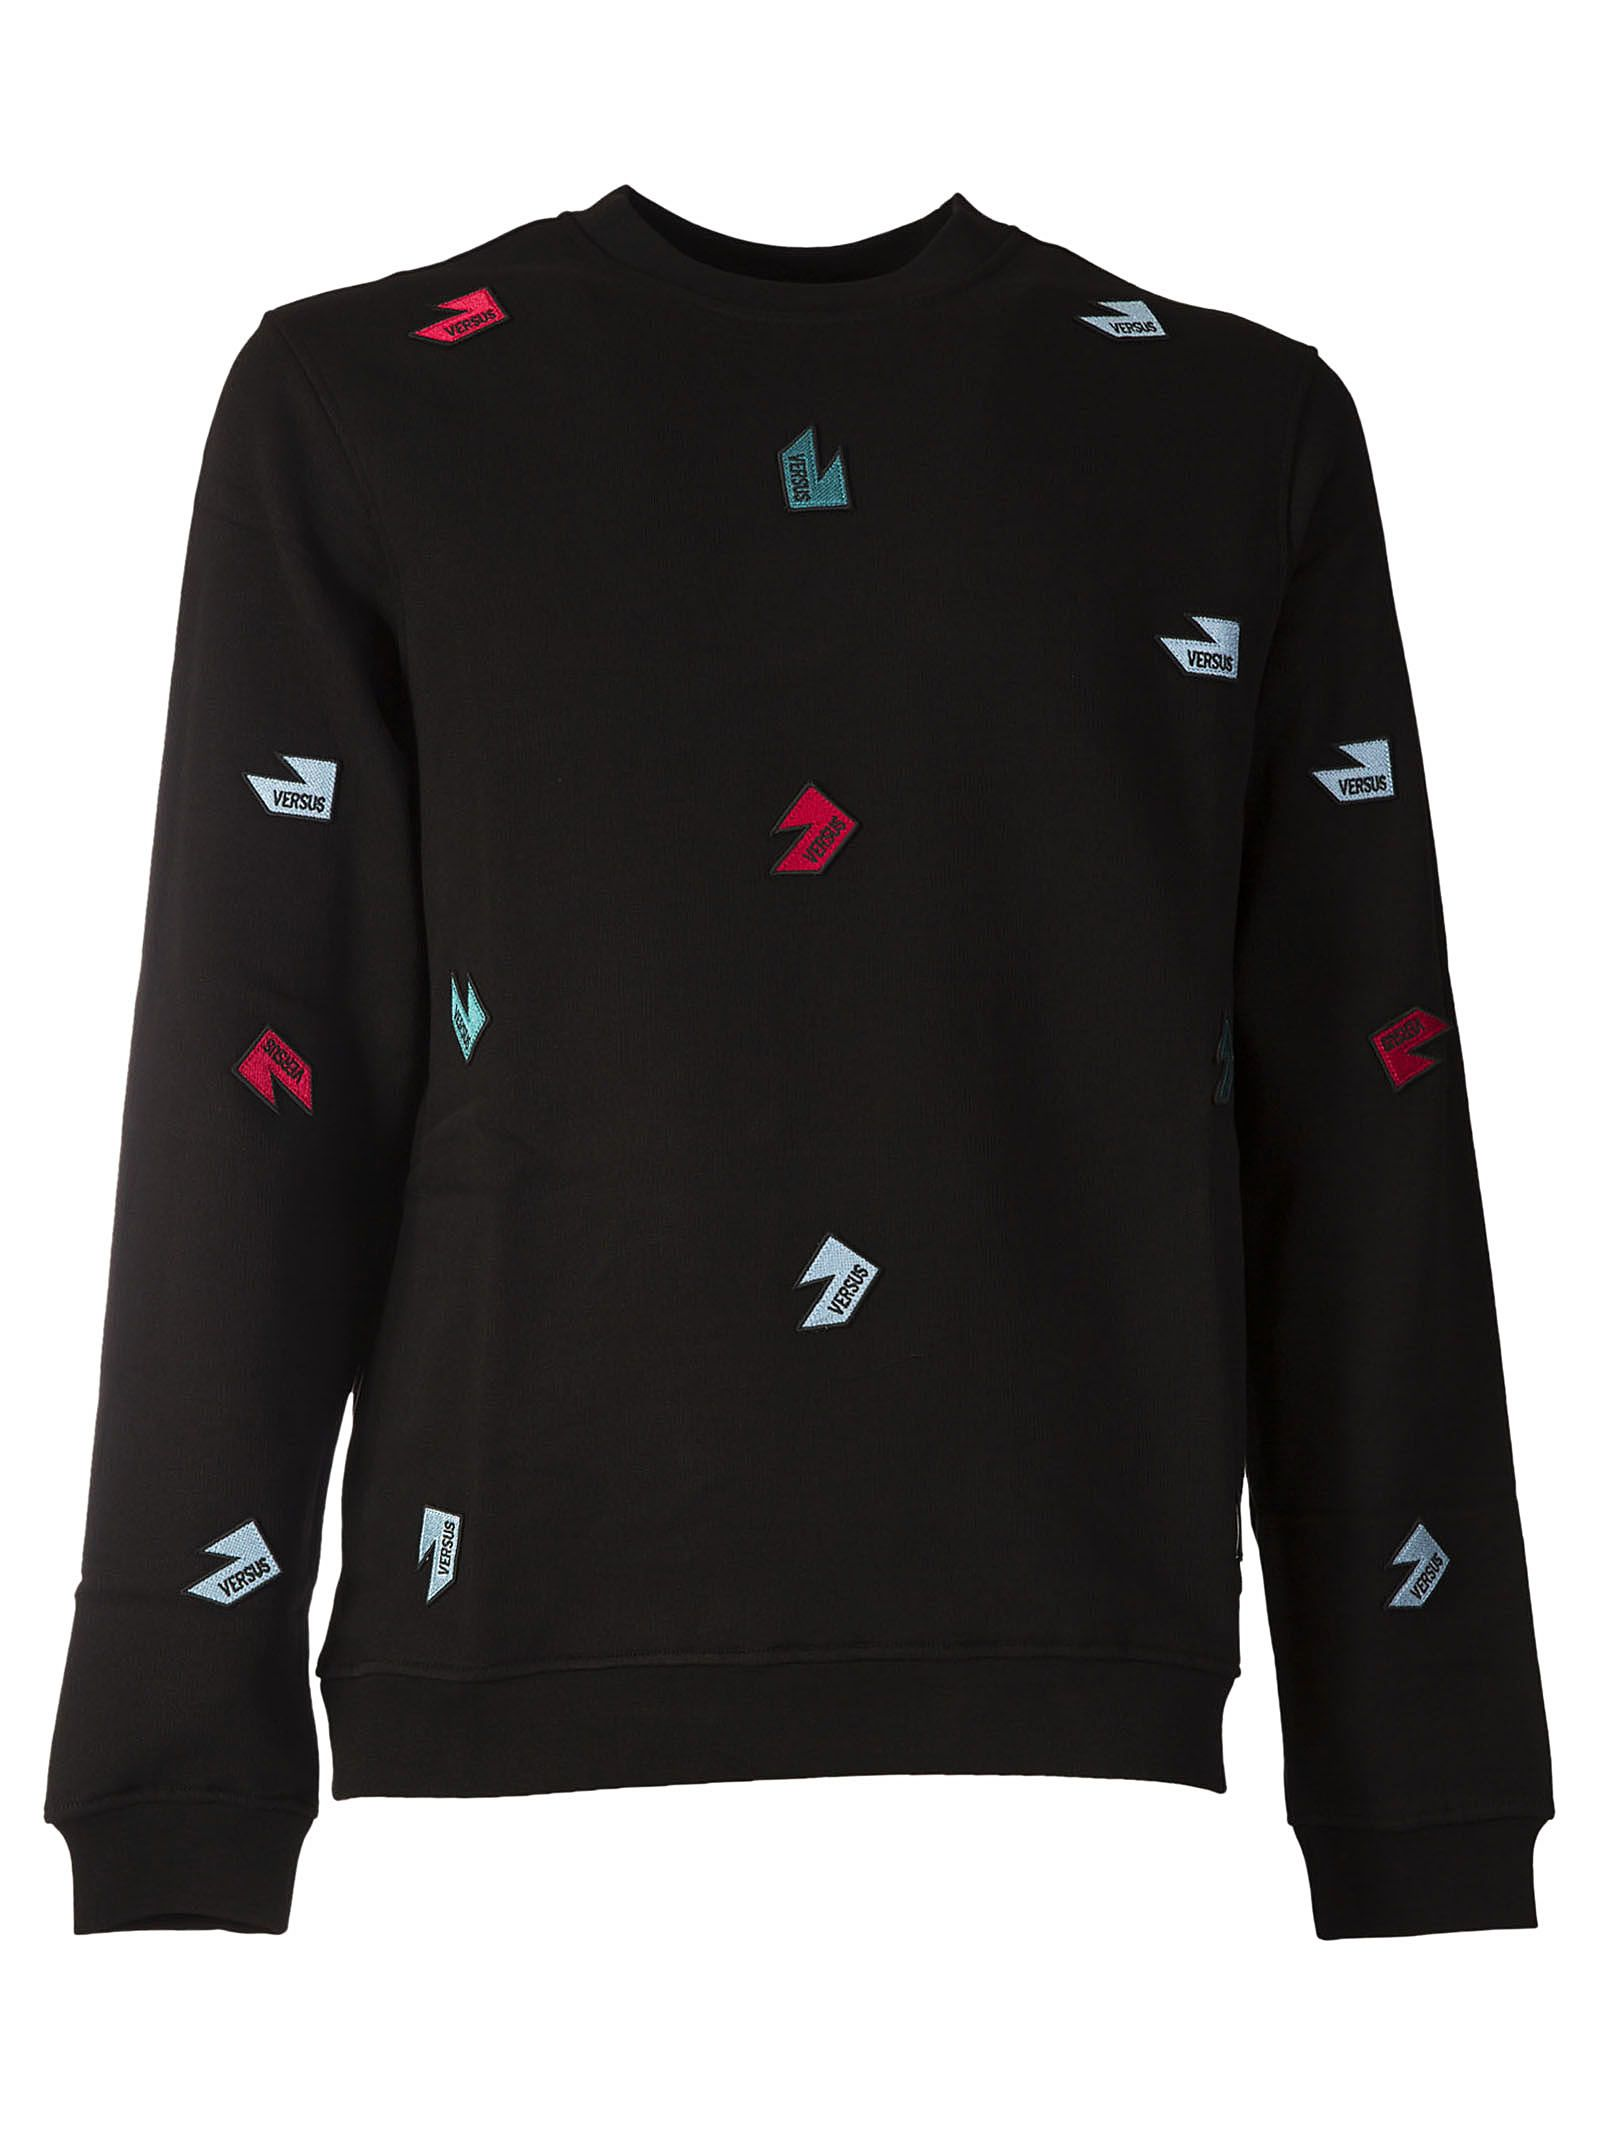 Versus Logo Patch Sweatshirt